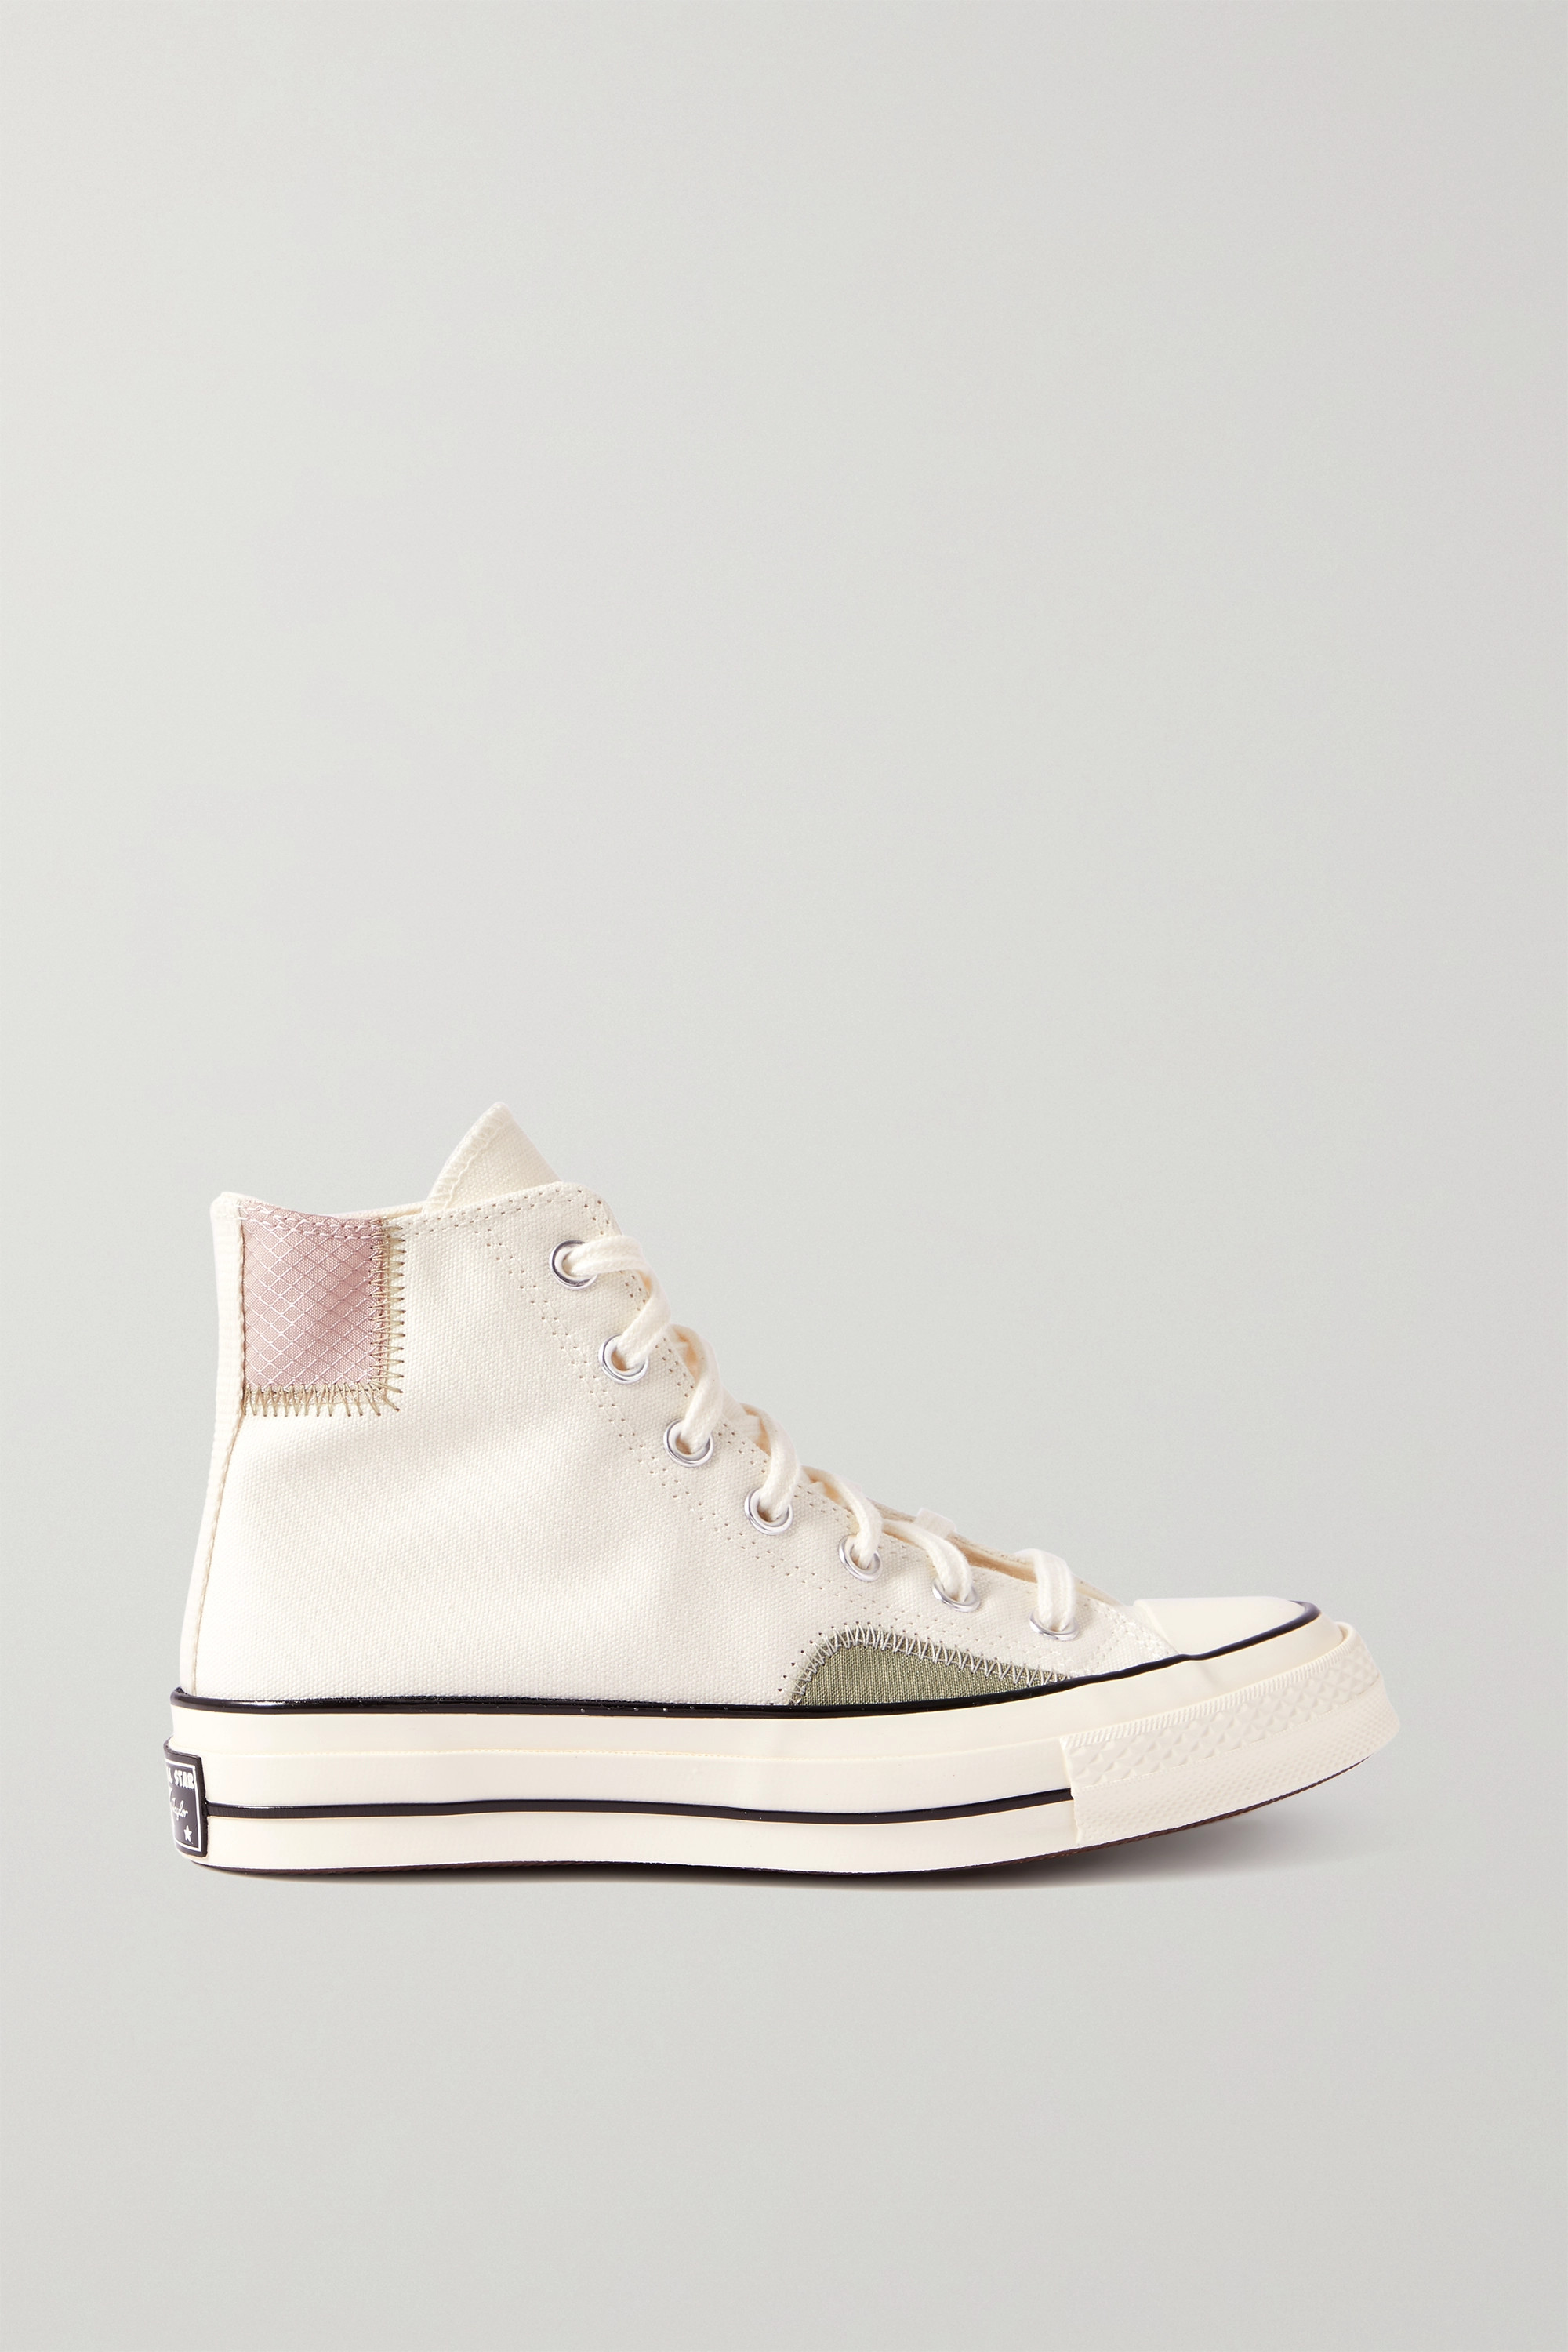 Converse Chuck Taylor All Star 70 canvas and ripstop high-top sneakers